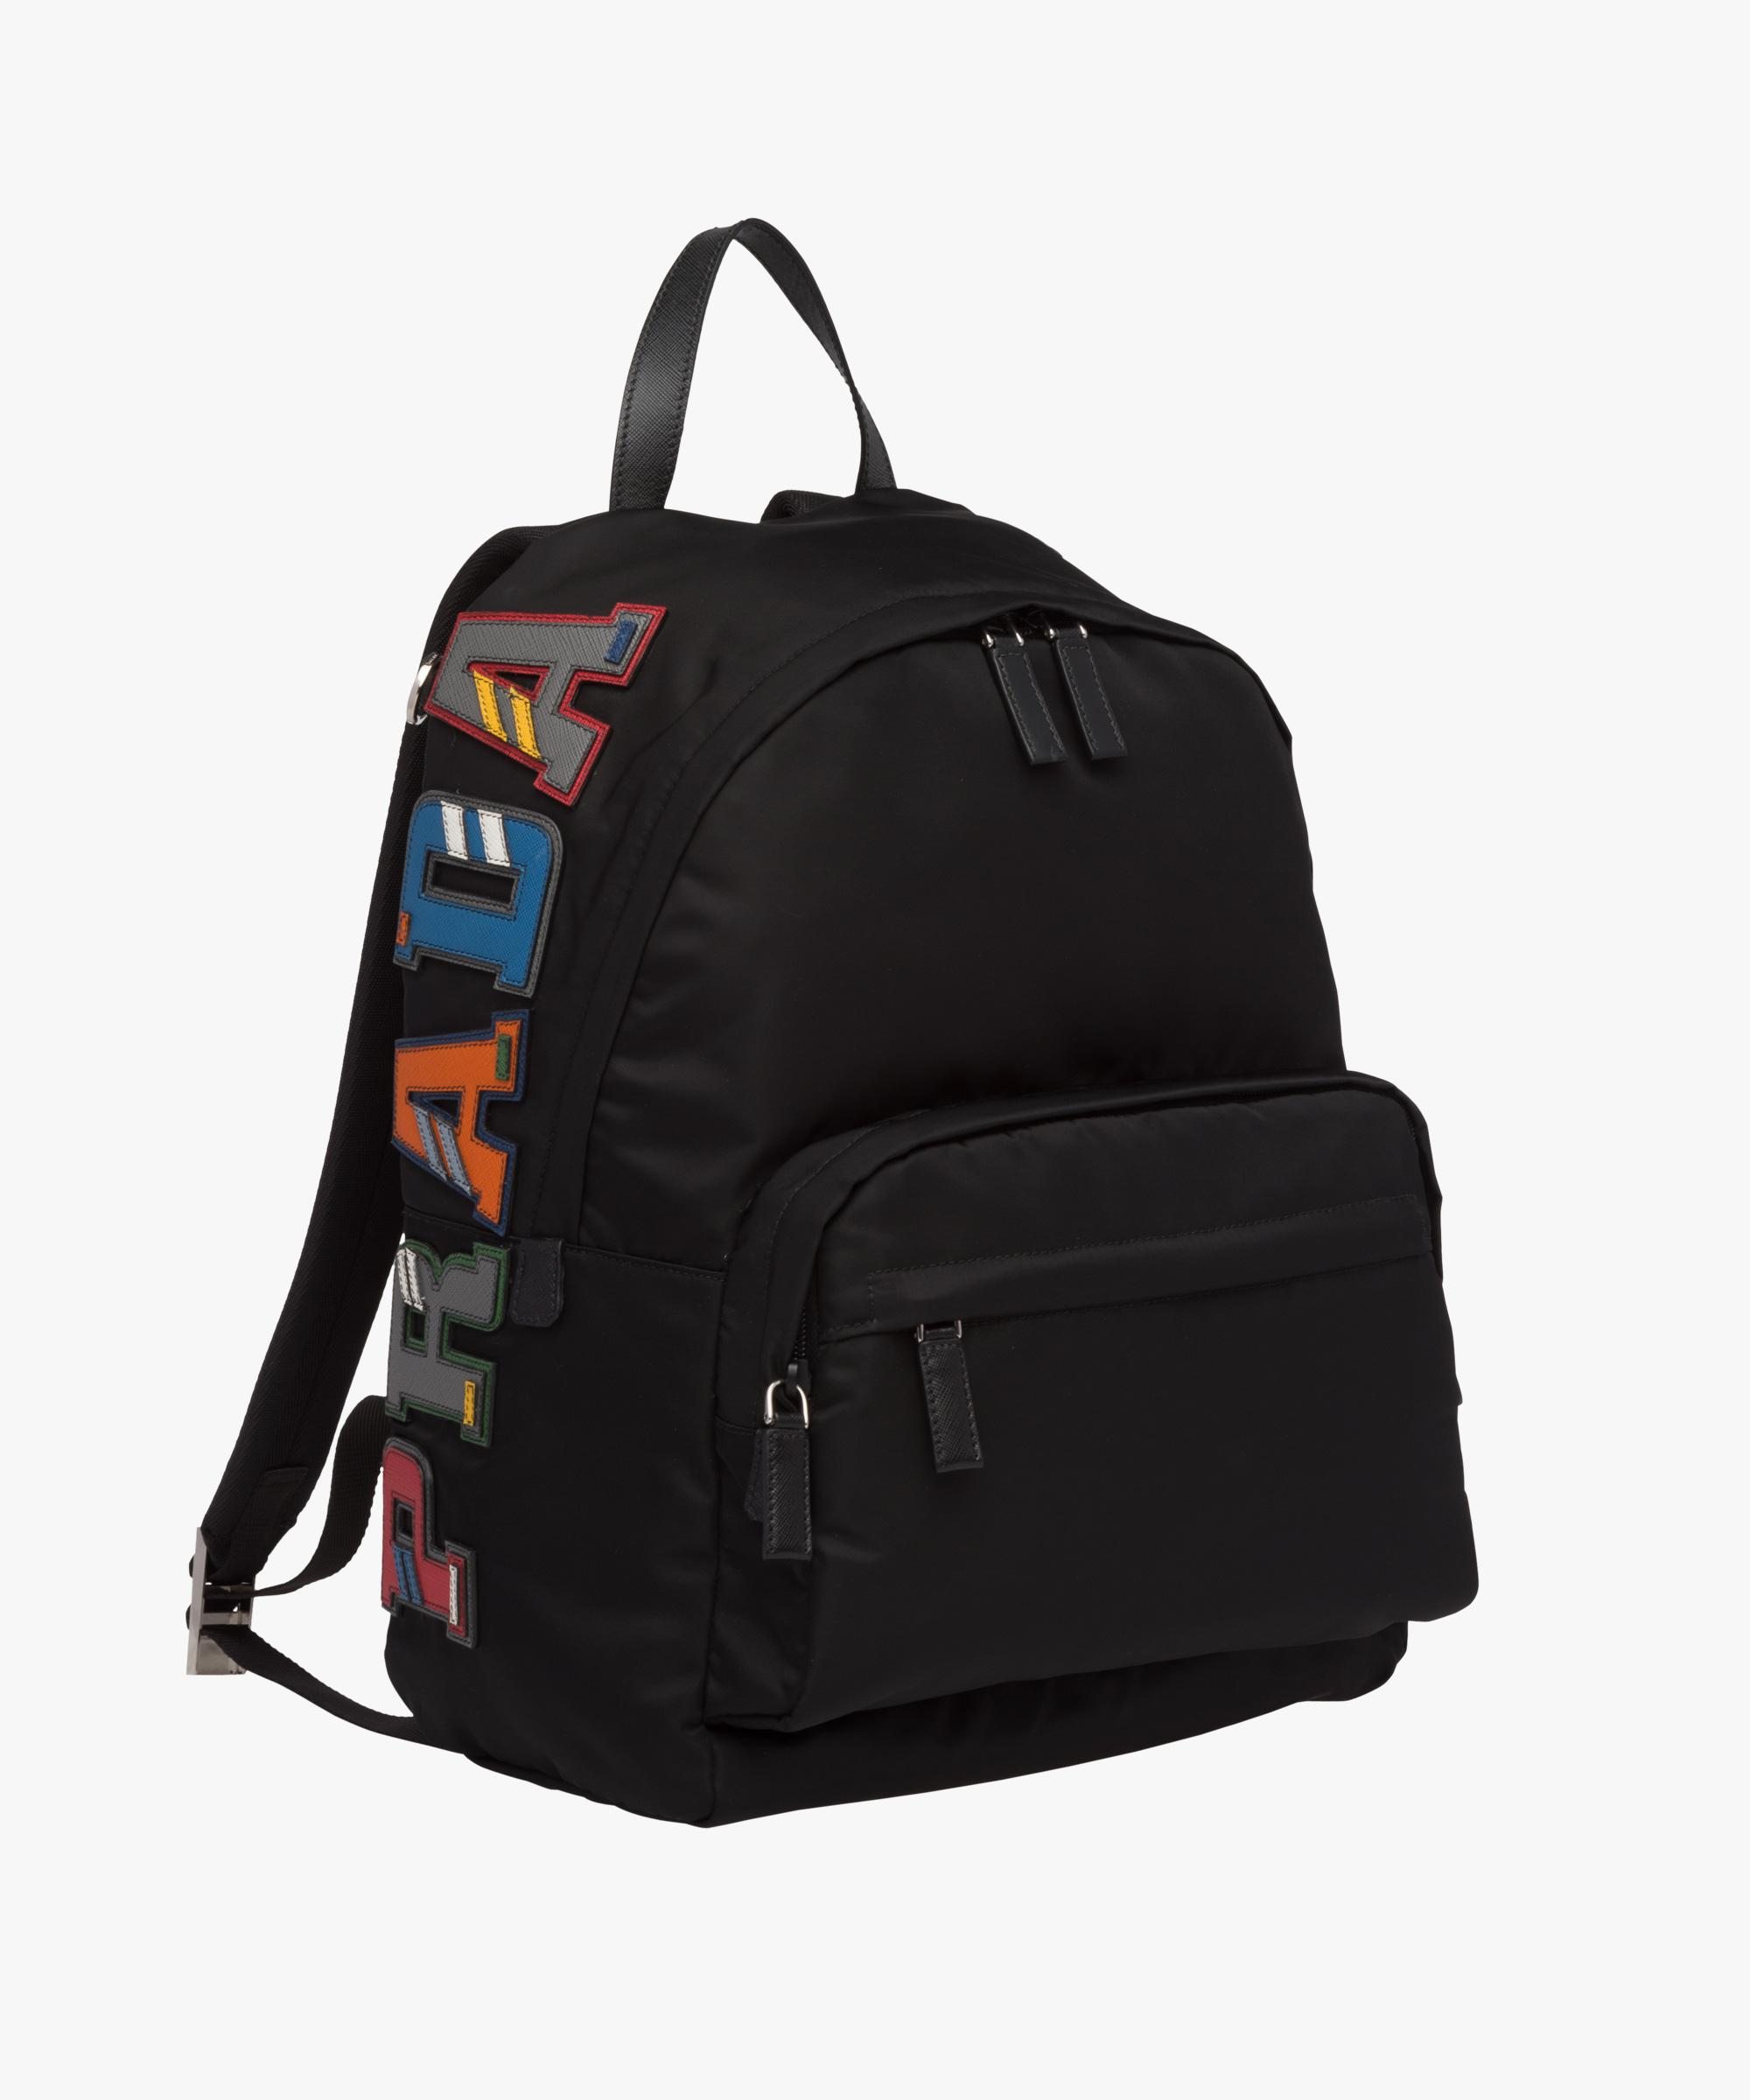 ... amazon lyst prada nylon and saffiano leather backpack in black for men  29050 77019 a721bb4070f92